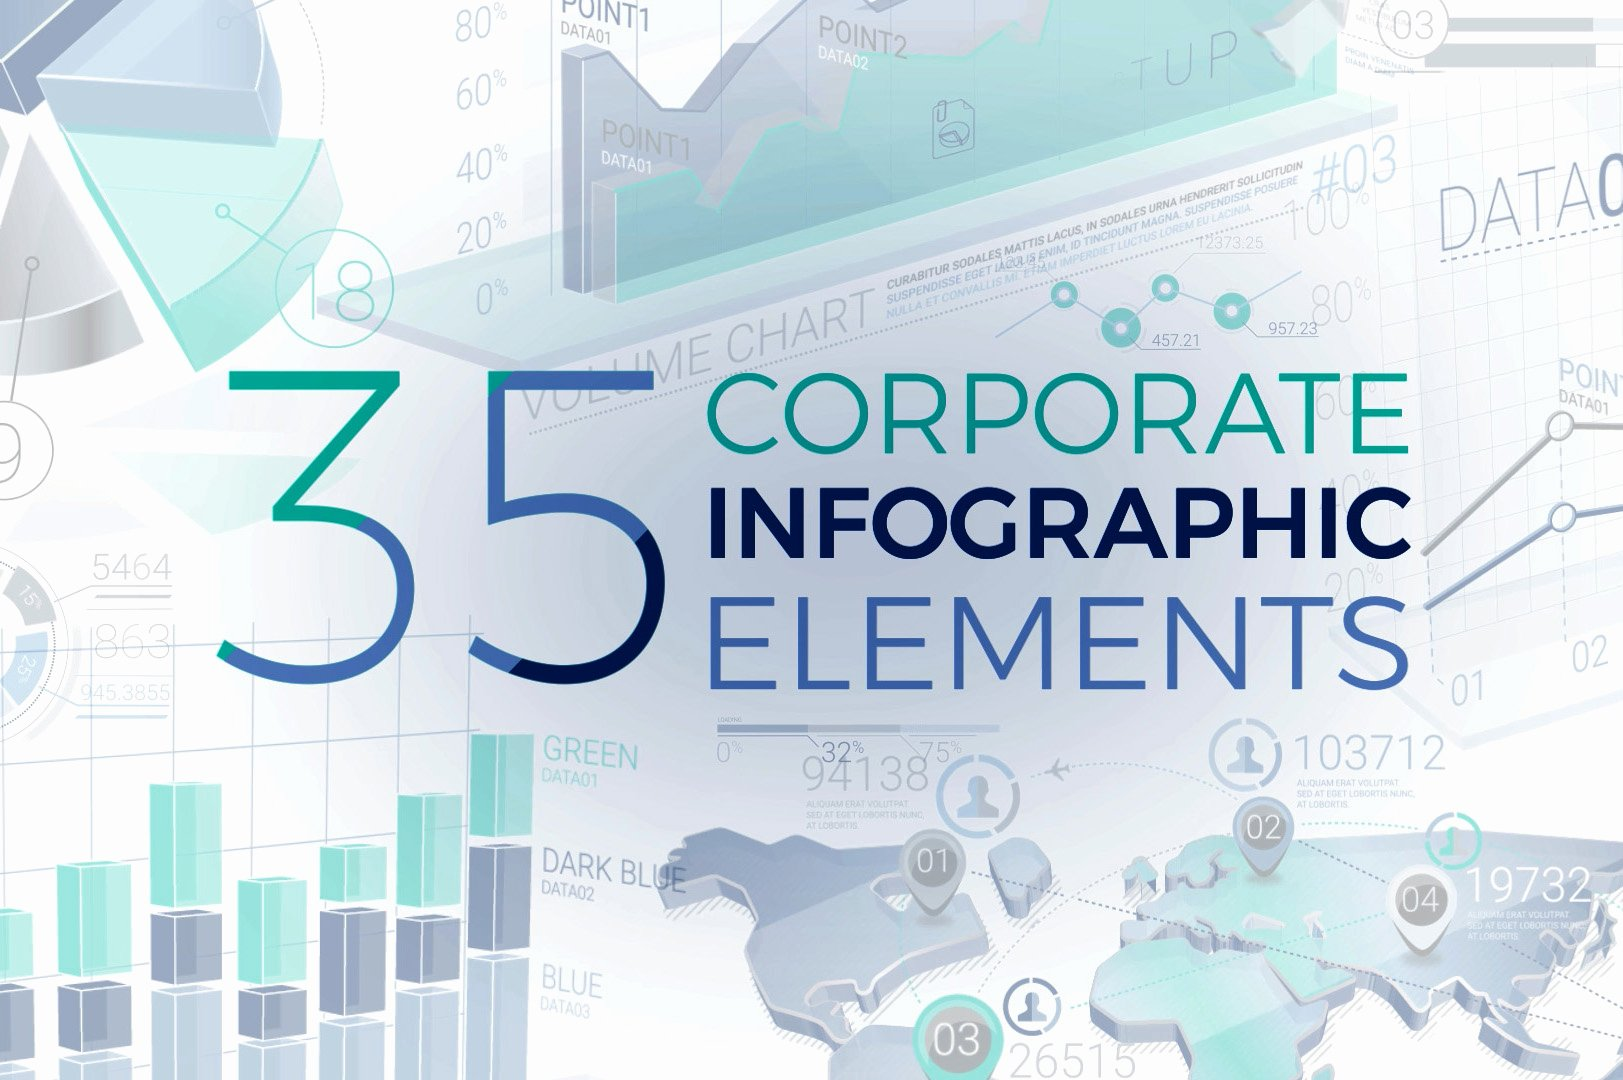 After Effects Infographic Template Elegant Corporate Infographic Elements after Effects Template